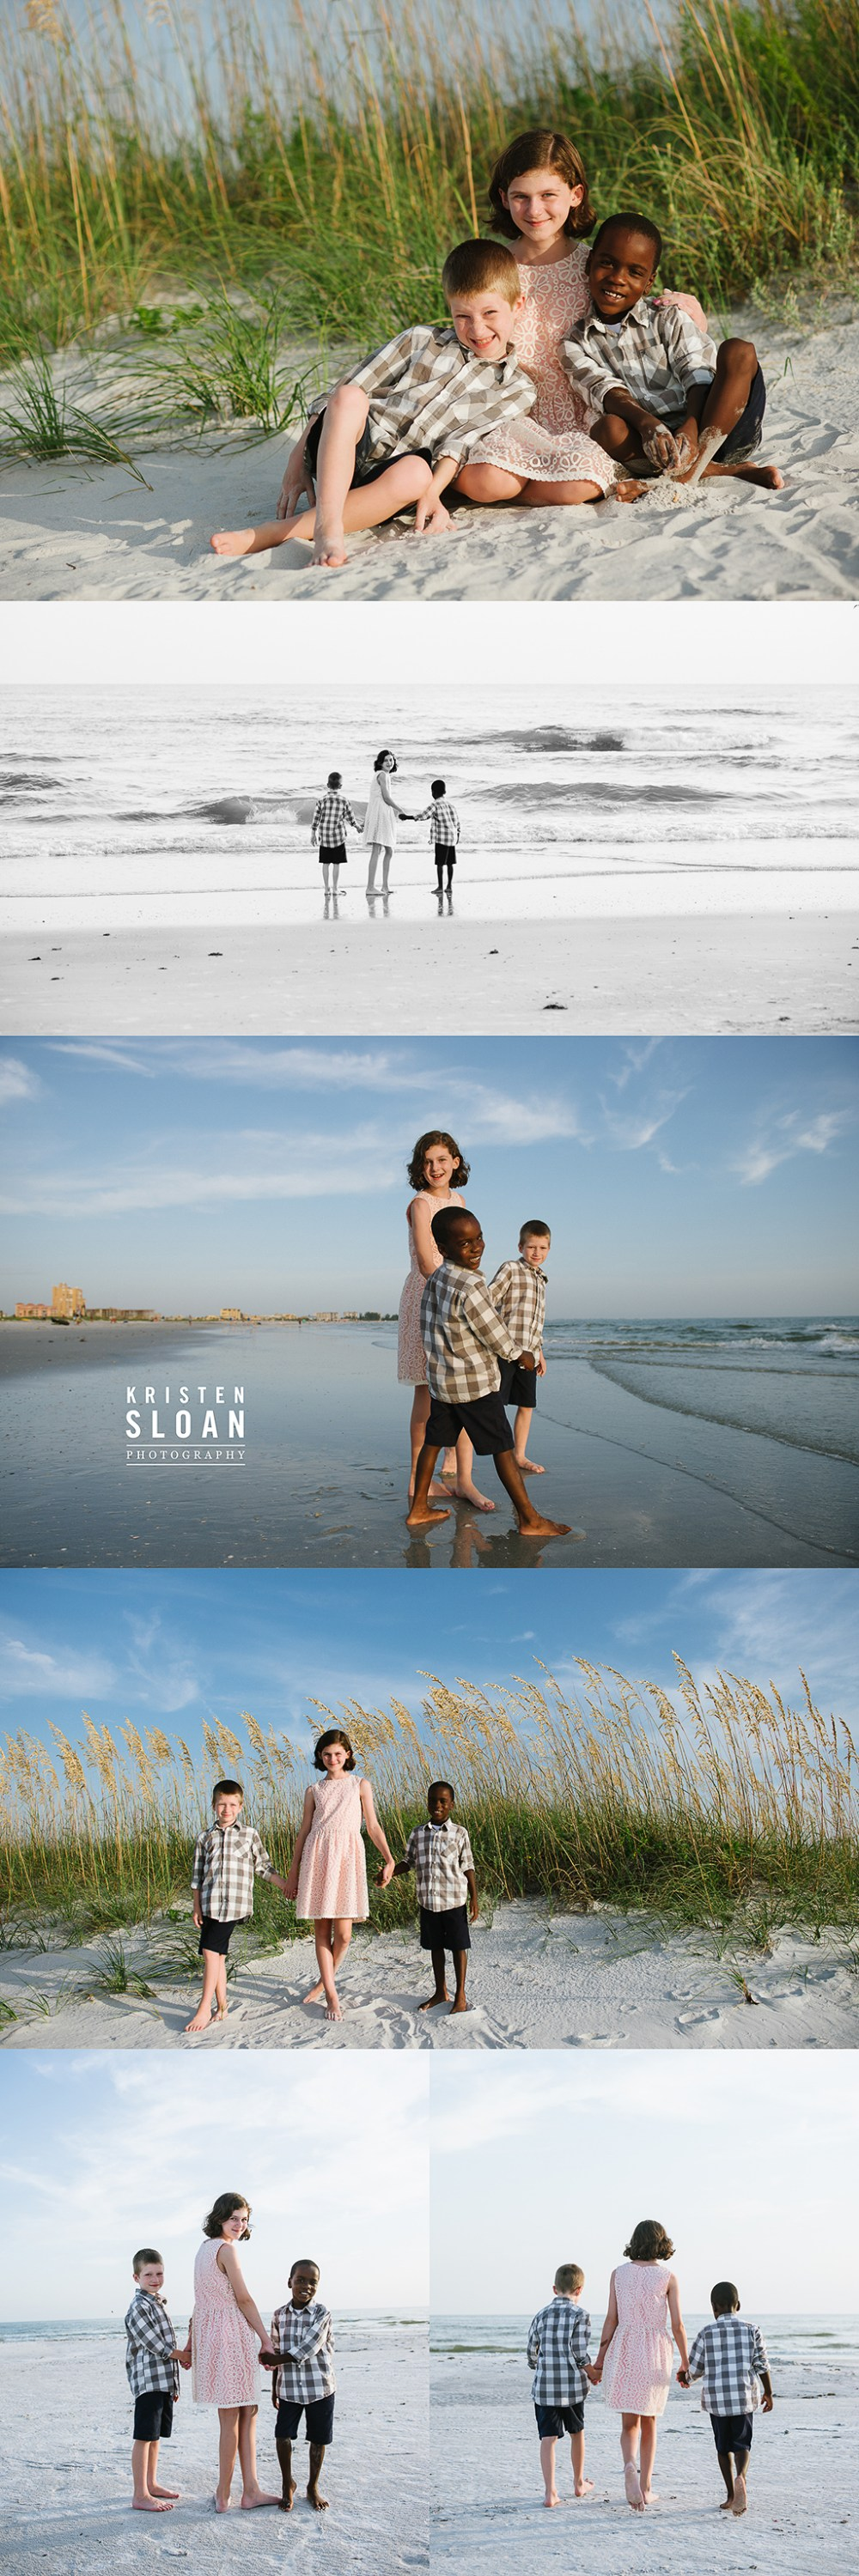 St Pete Beach FL Family Portrait Photos By Kristen Sloan Photography